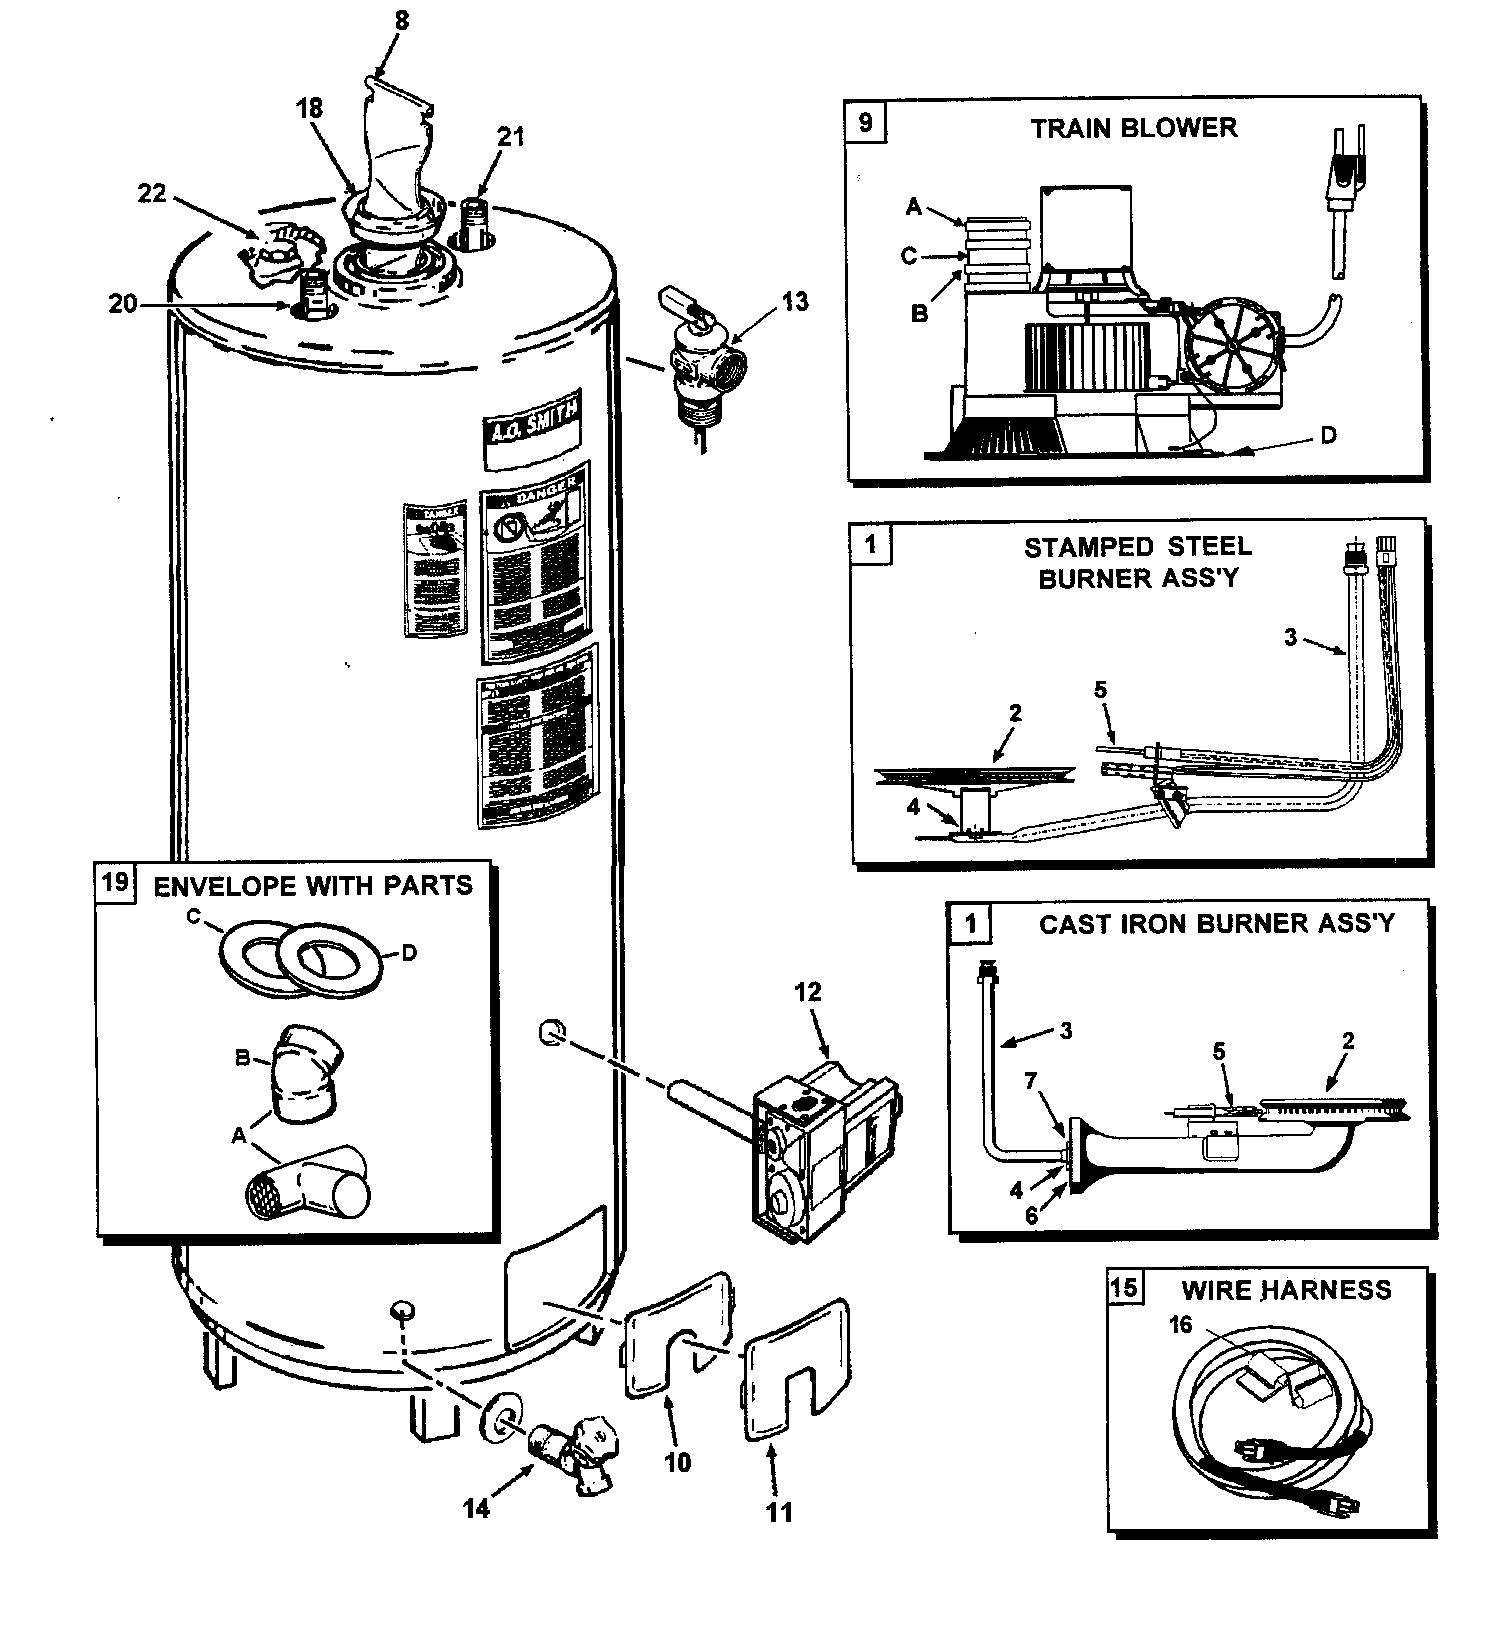 Hot Water Heater Wiring Diagram For Correct